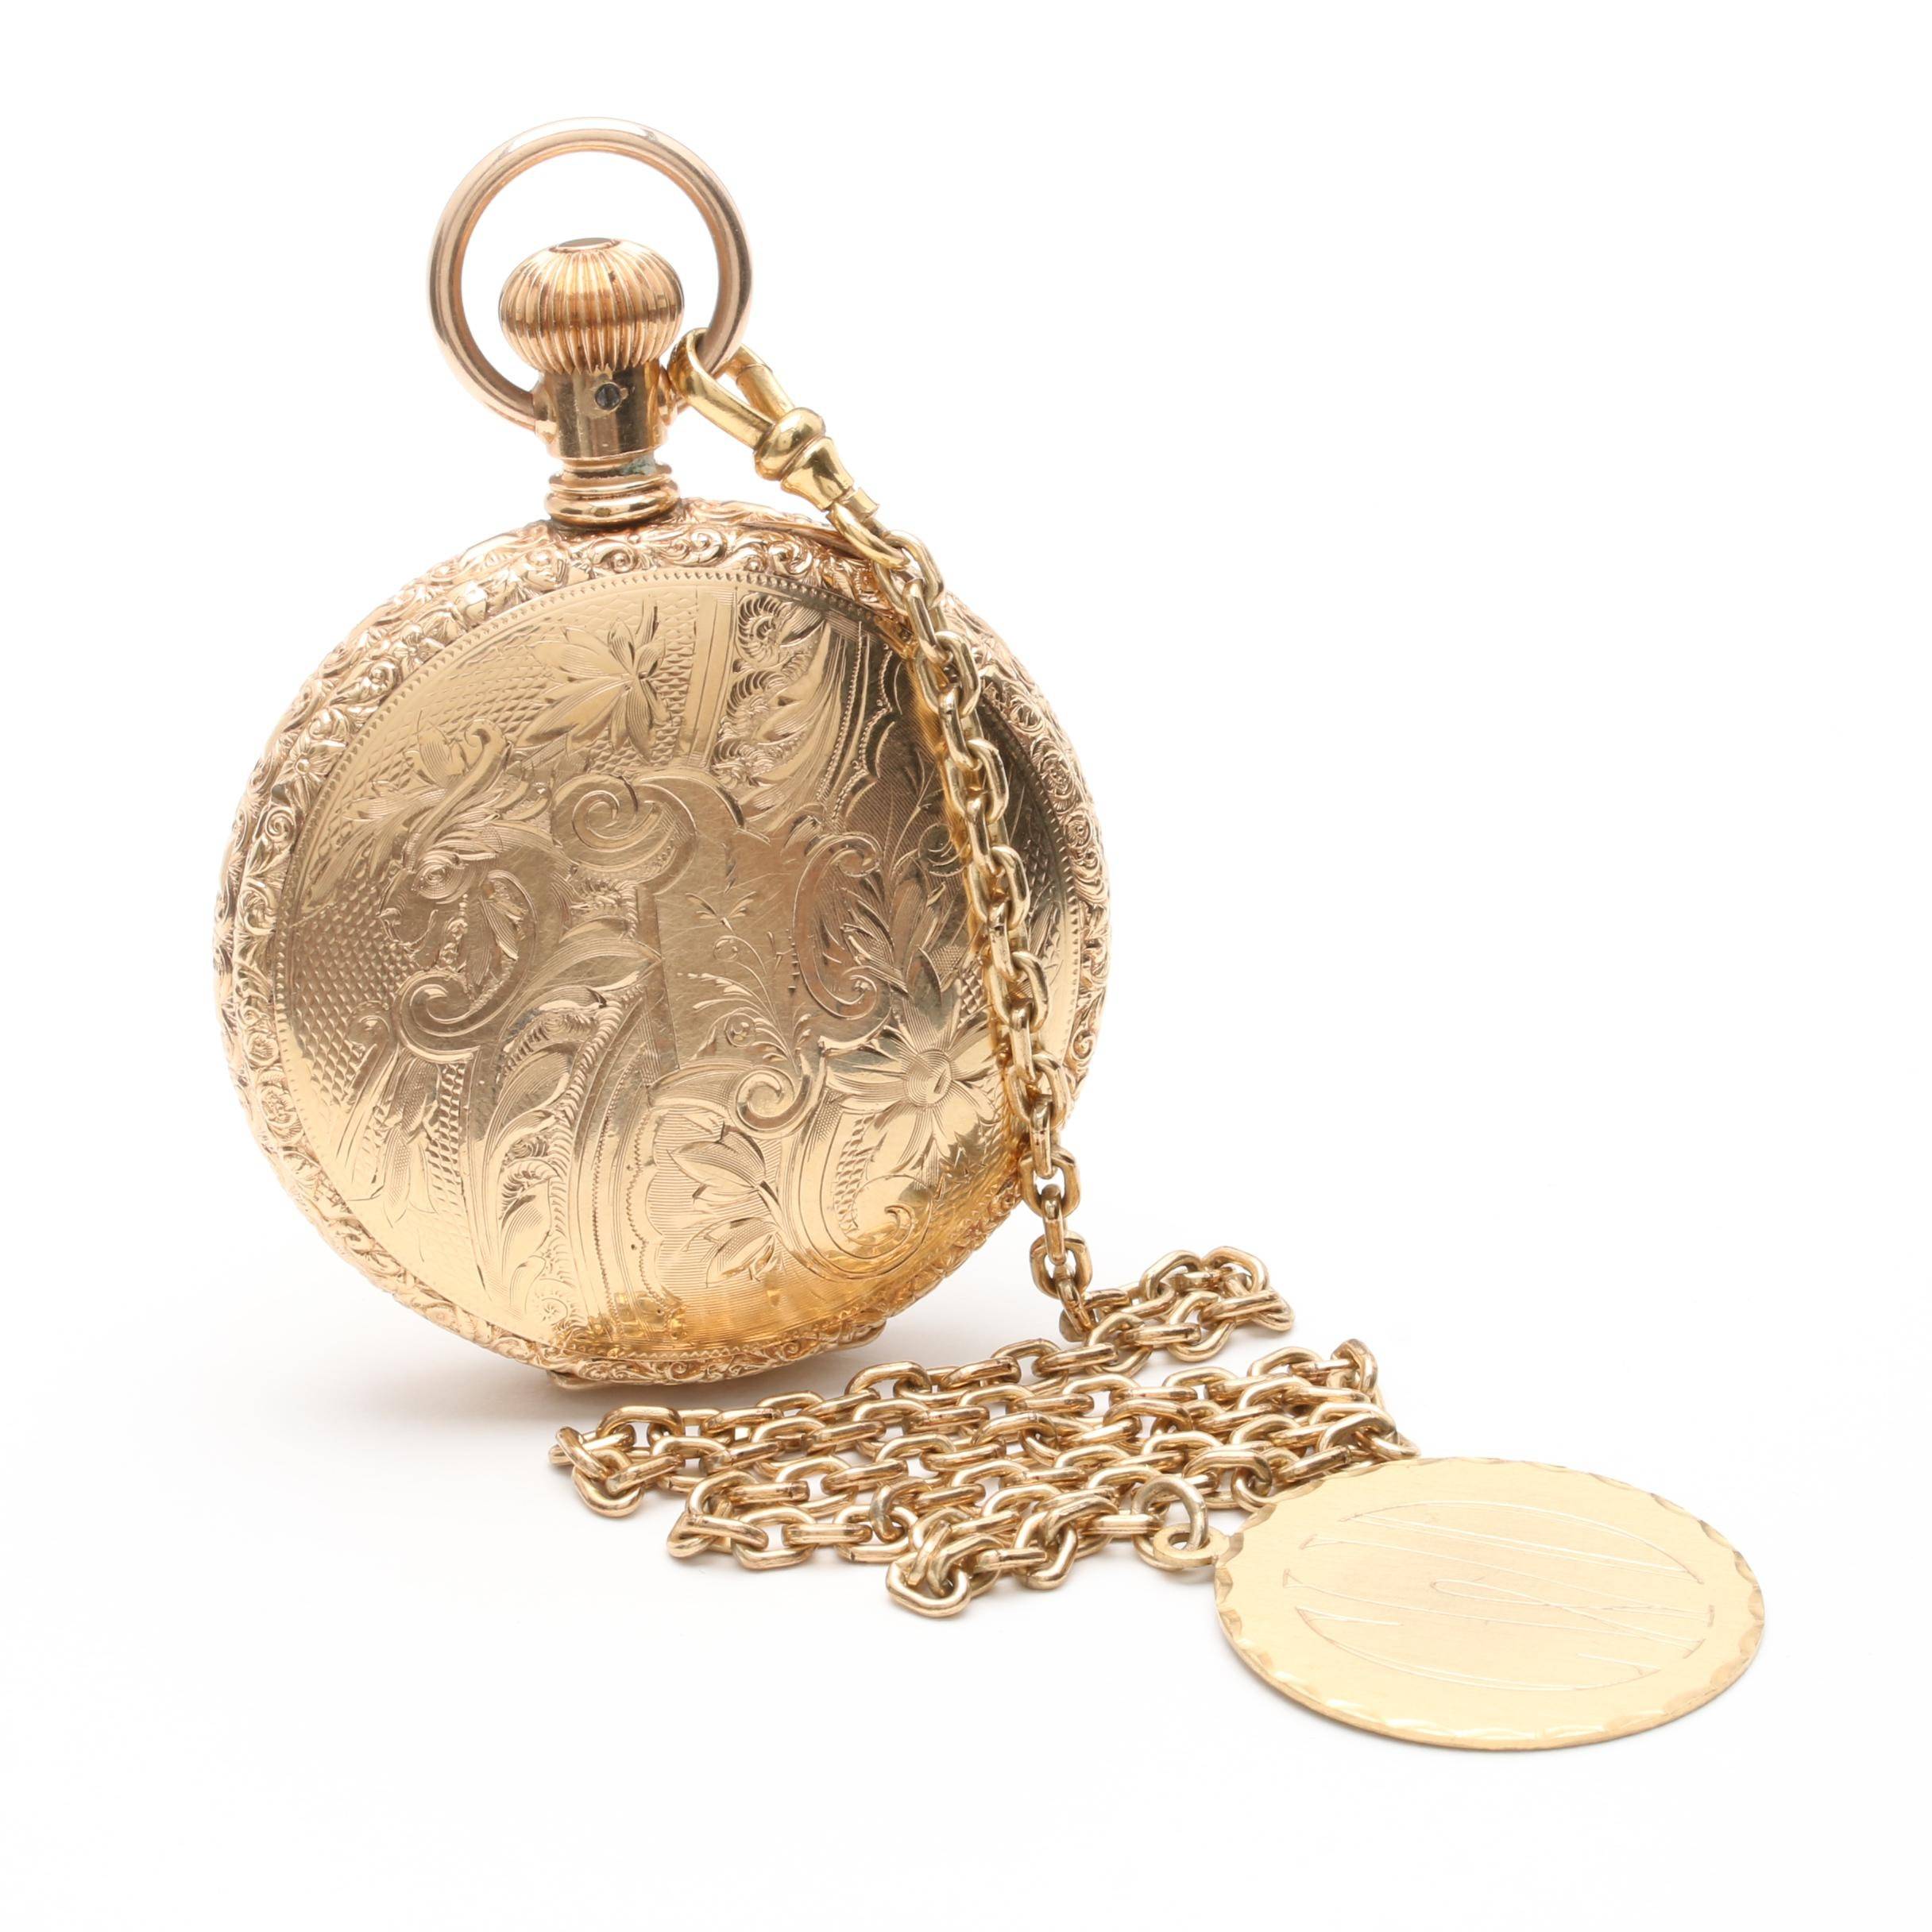 Gold Filled Diamond Pocket Watch With Fob Chain and Disc Charm